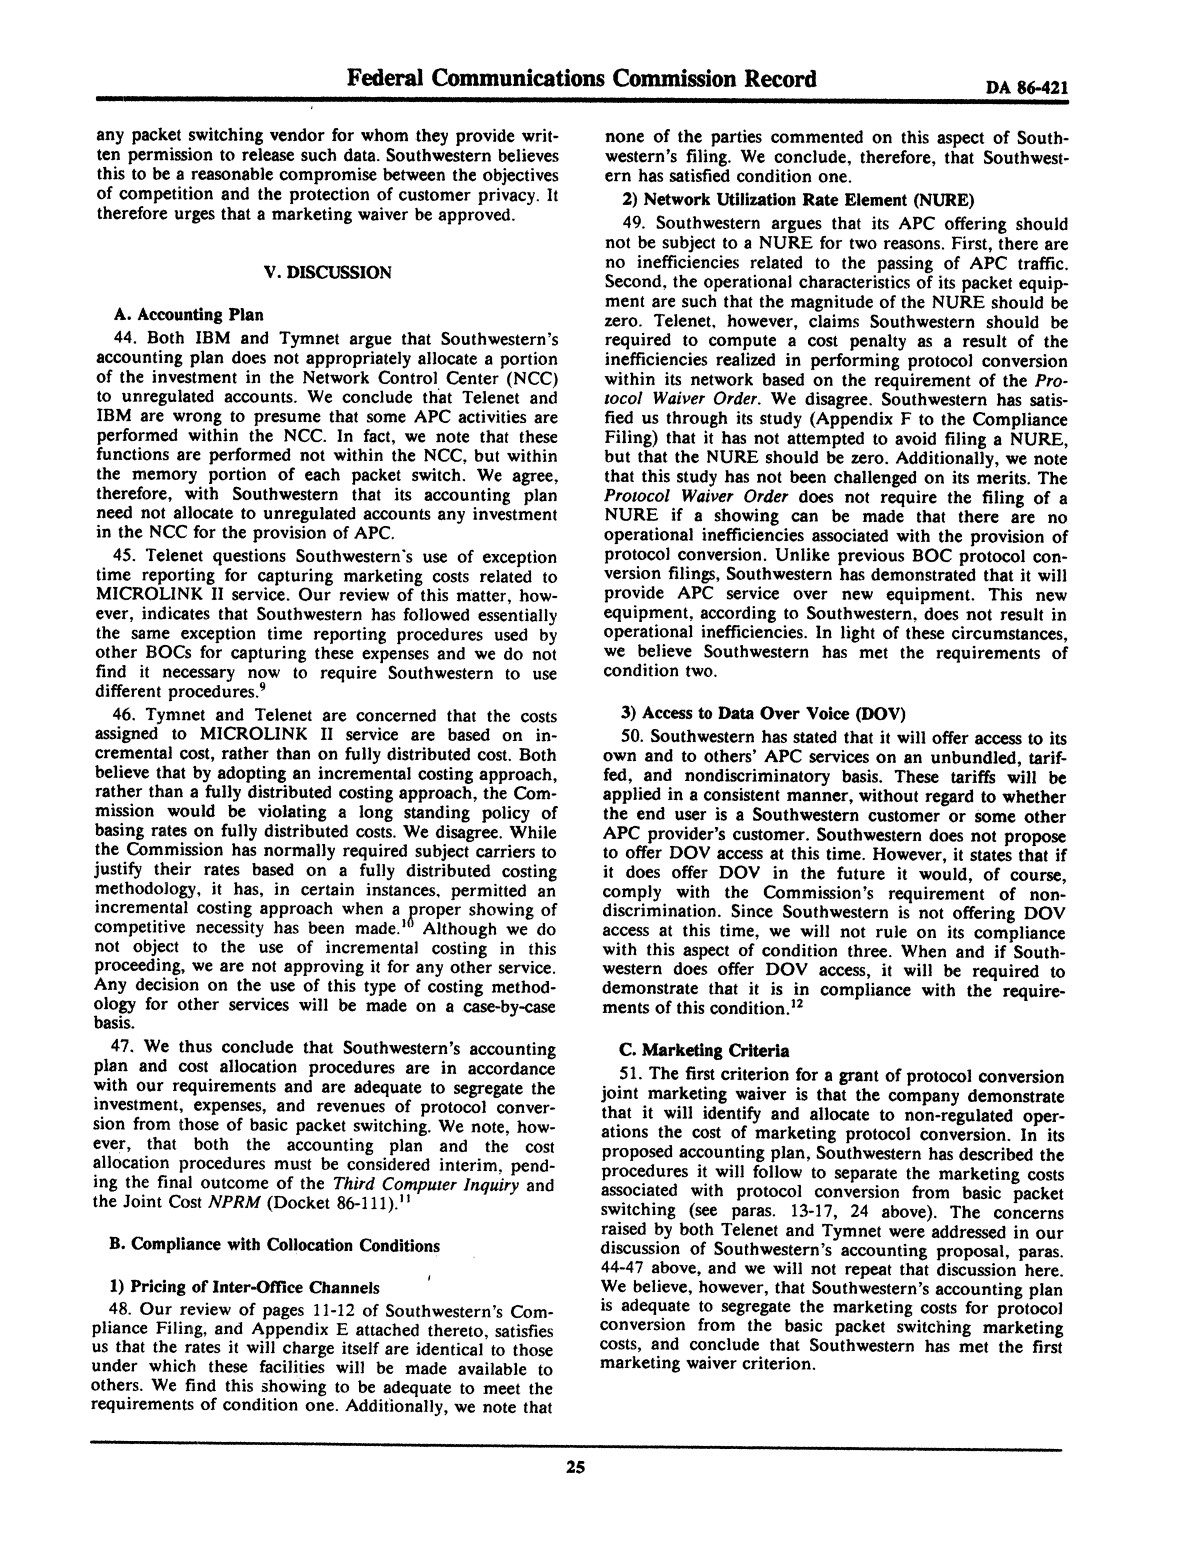 FCC Record, Volume 2, No. 1, Pages 1 to 409, January 5 - January 16, 1987                                                                                                      25